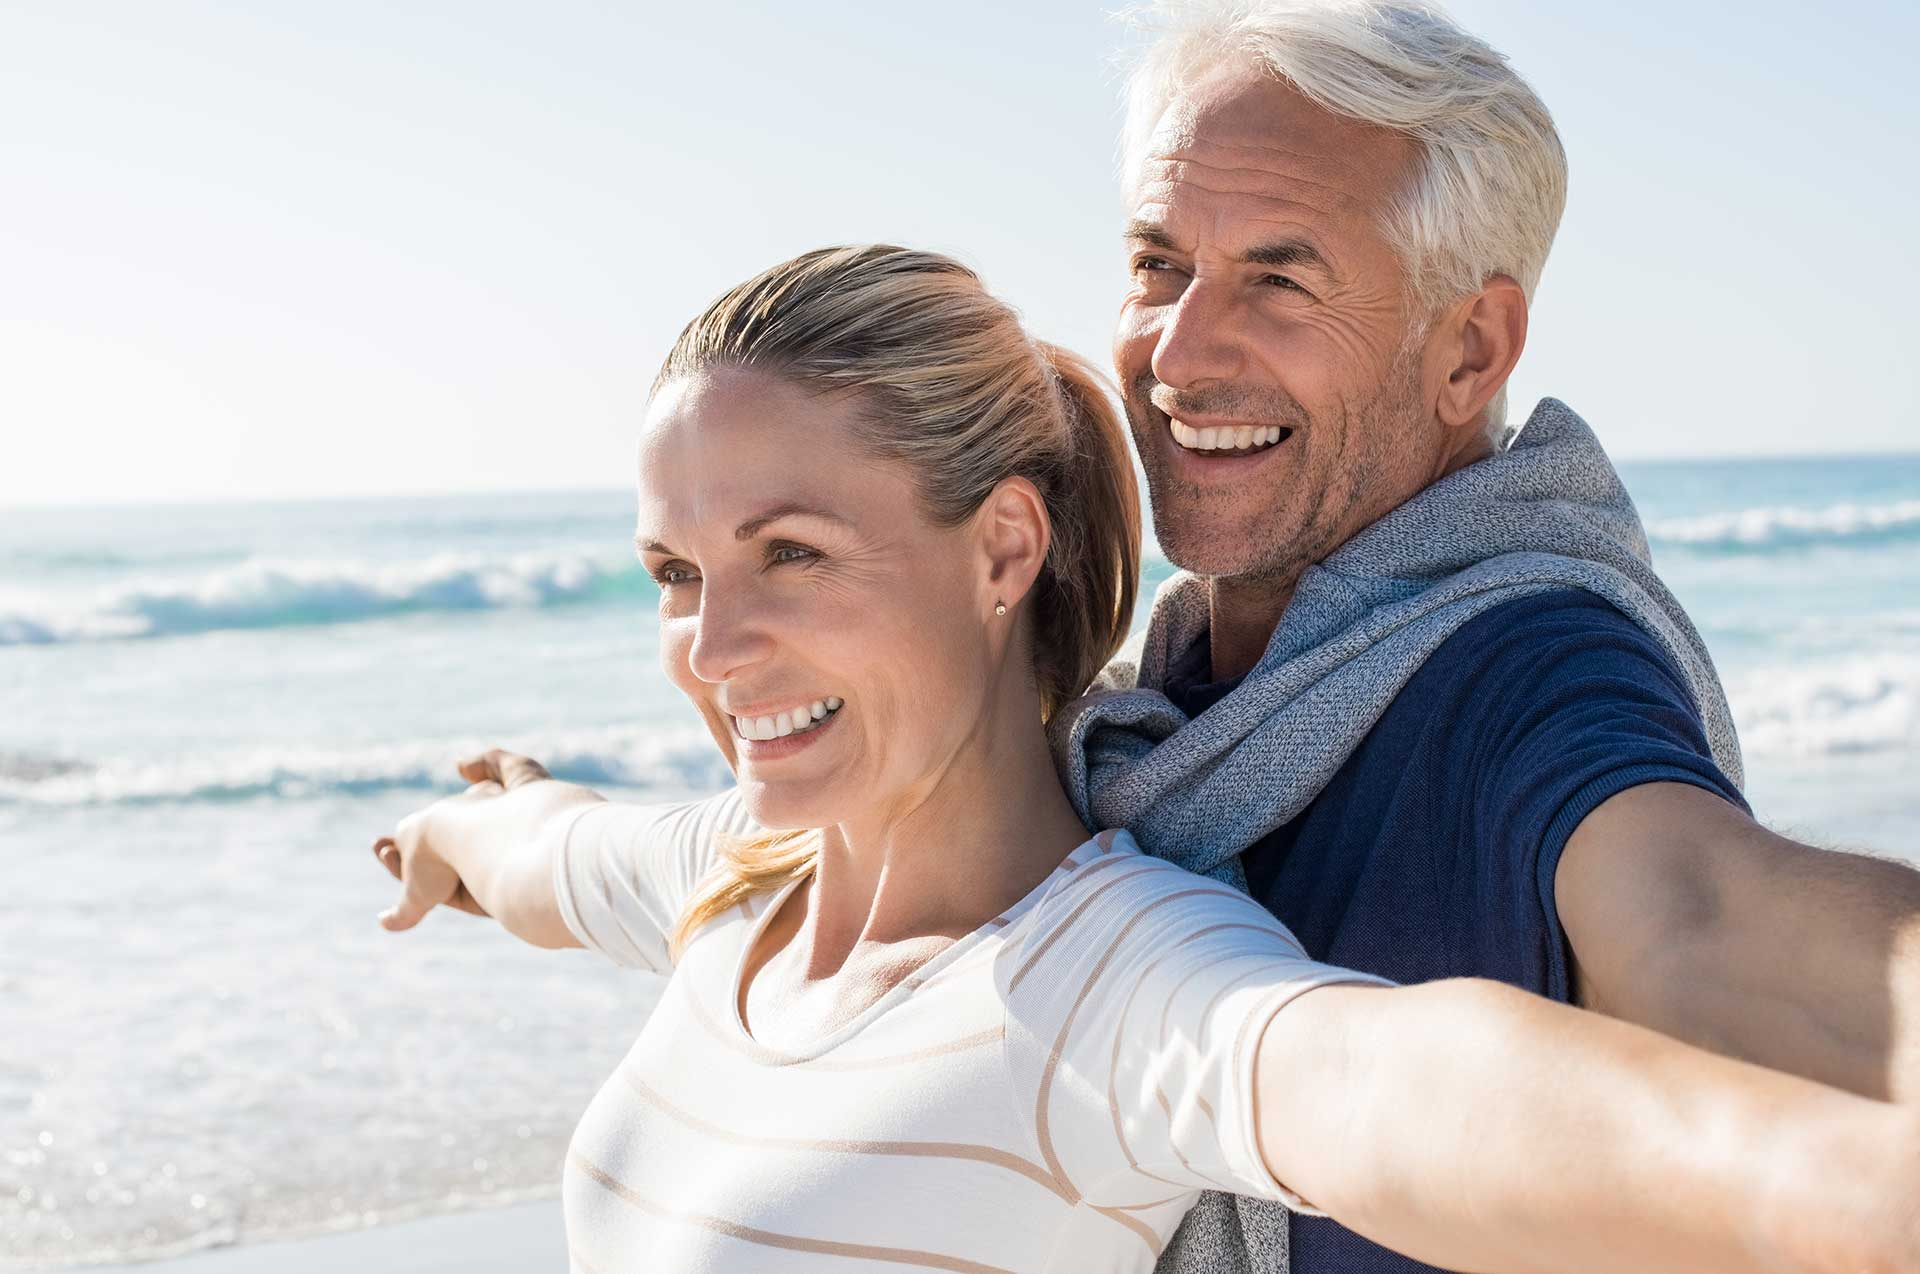 Erectile Dysfunction, Gainswave, Shockwave Therapy, Non Invasive treatment, No Surgery, No Medication, Alternative Healing in Manhattan, New York